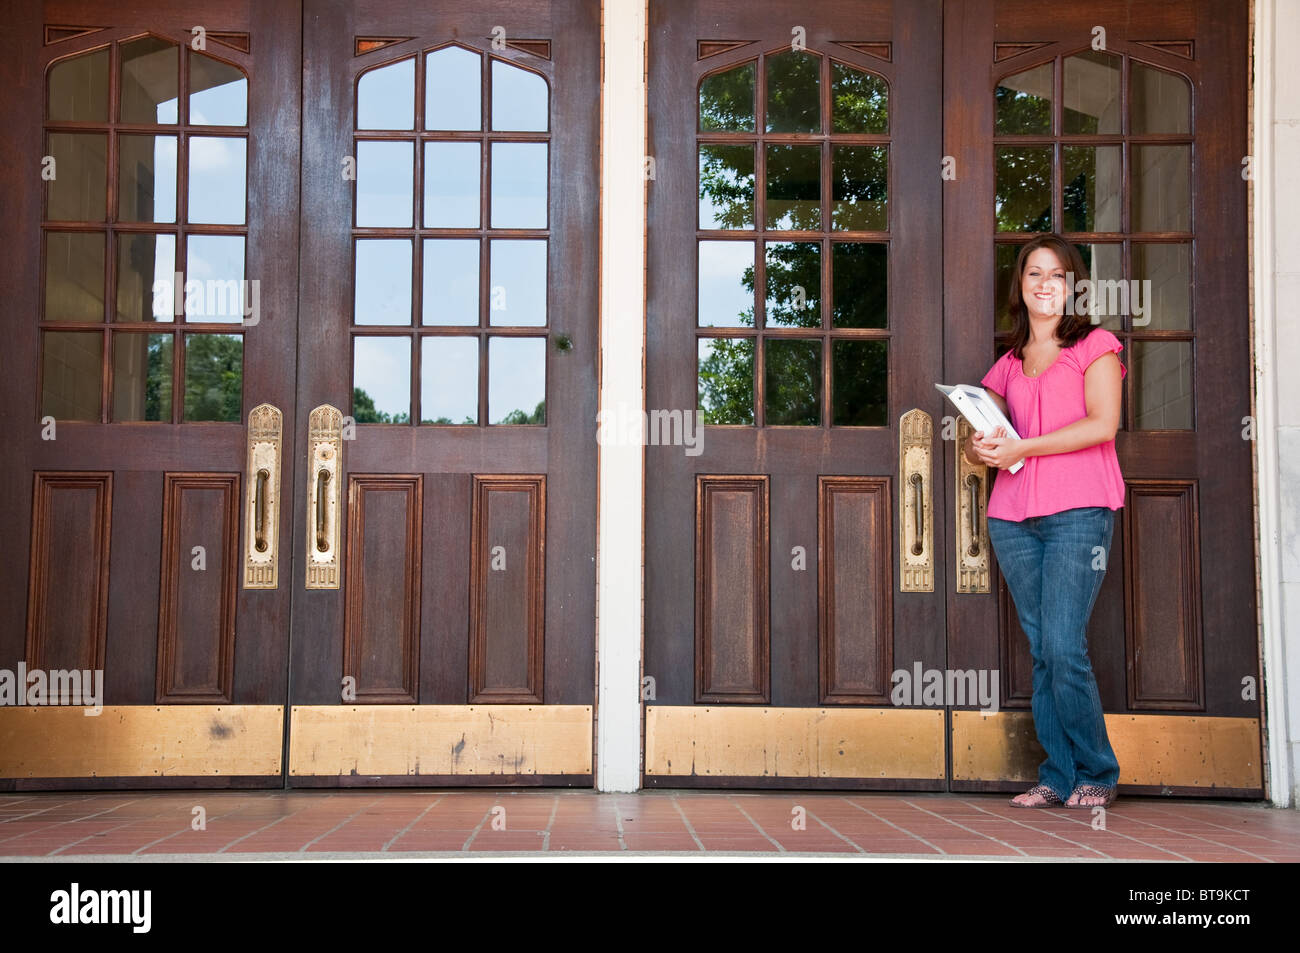 Female high school student holding books and standing at front door of school. - Stock Image